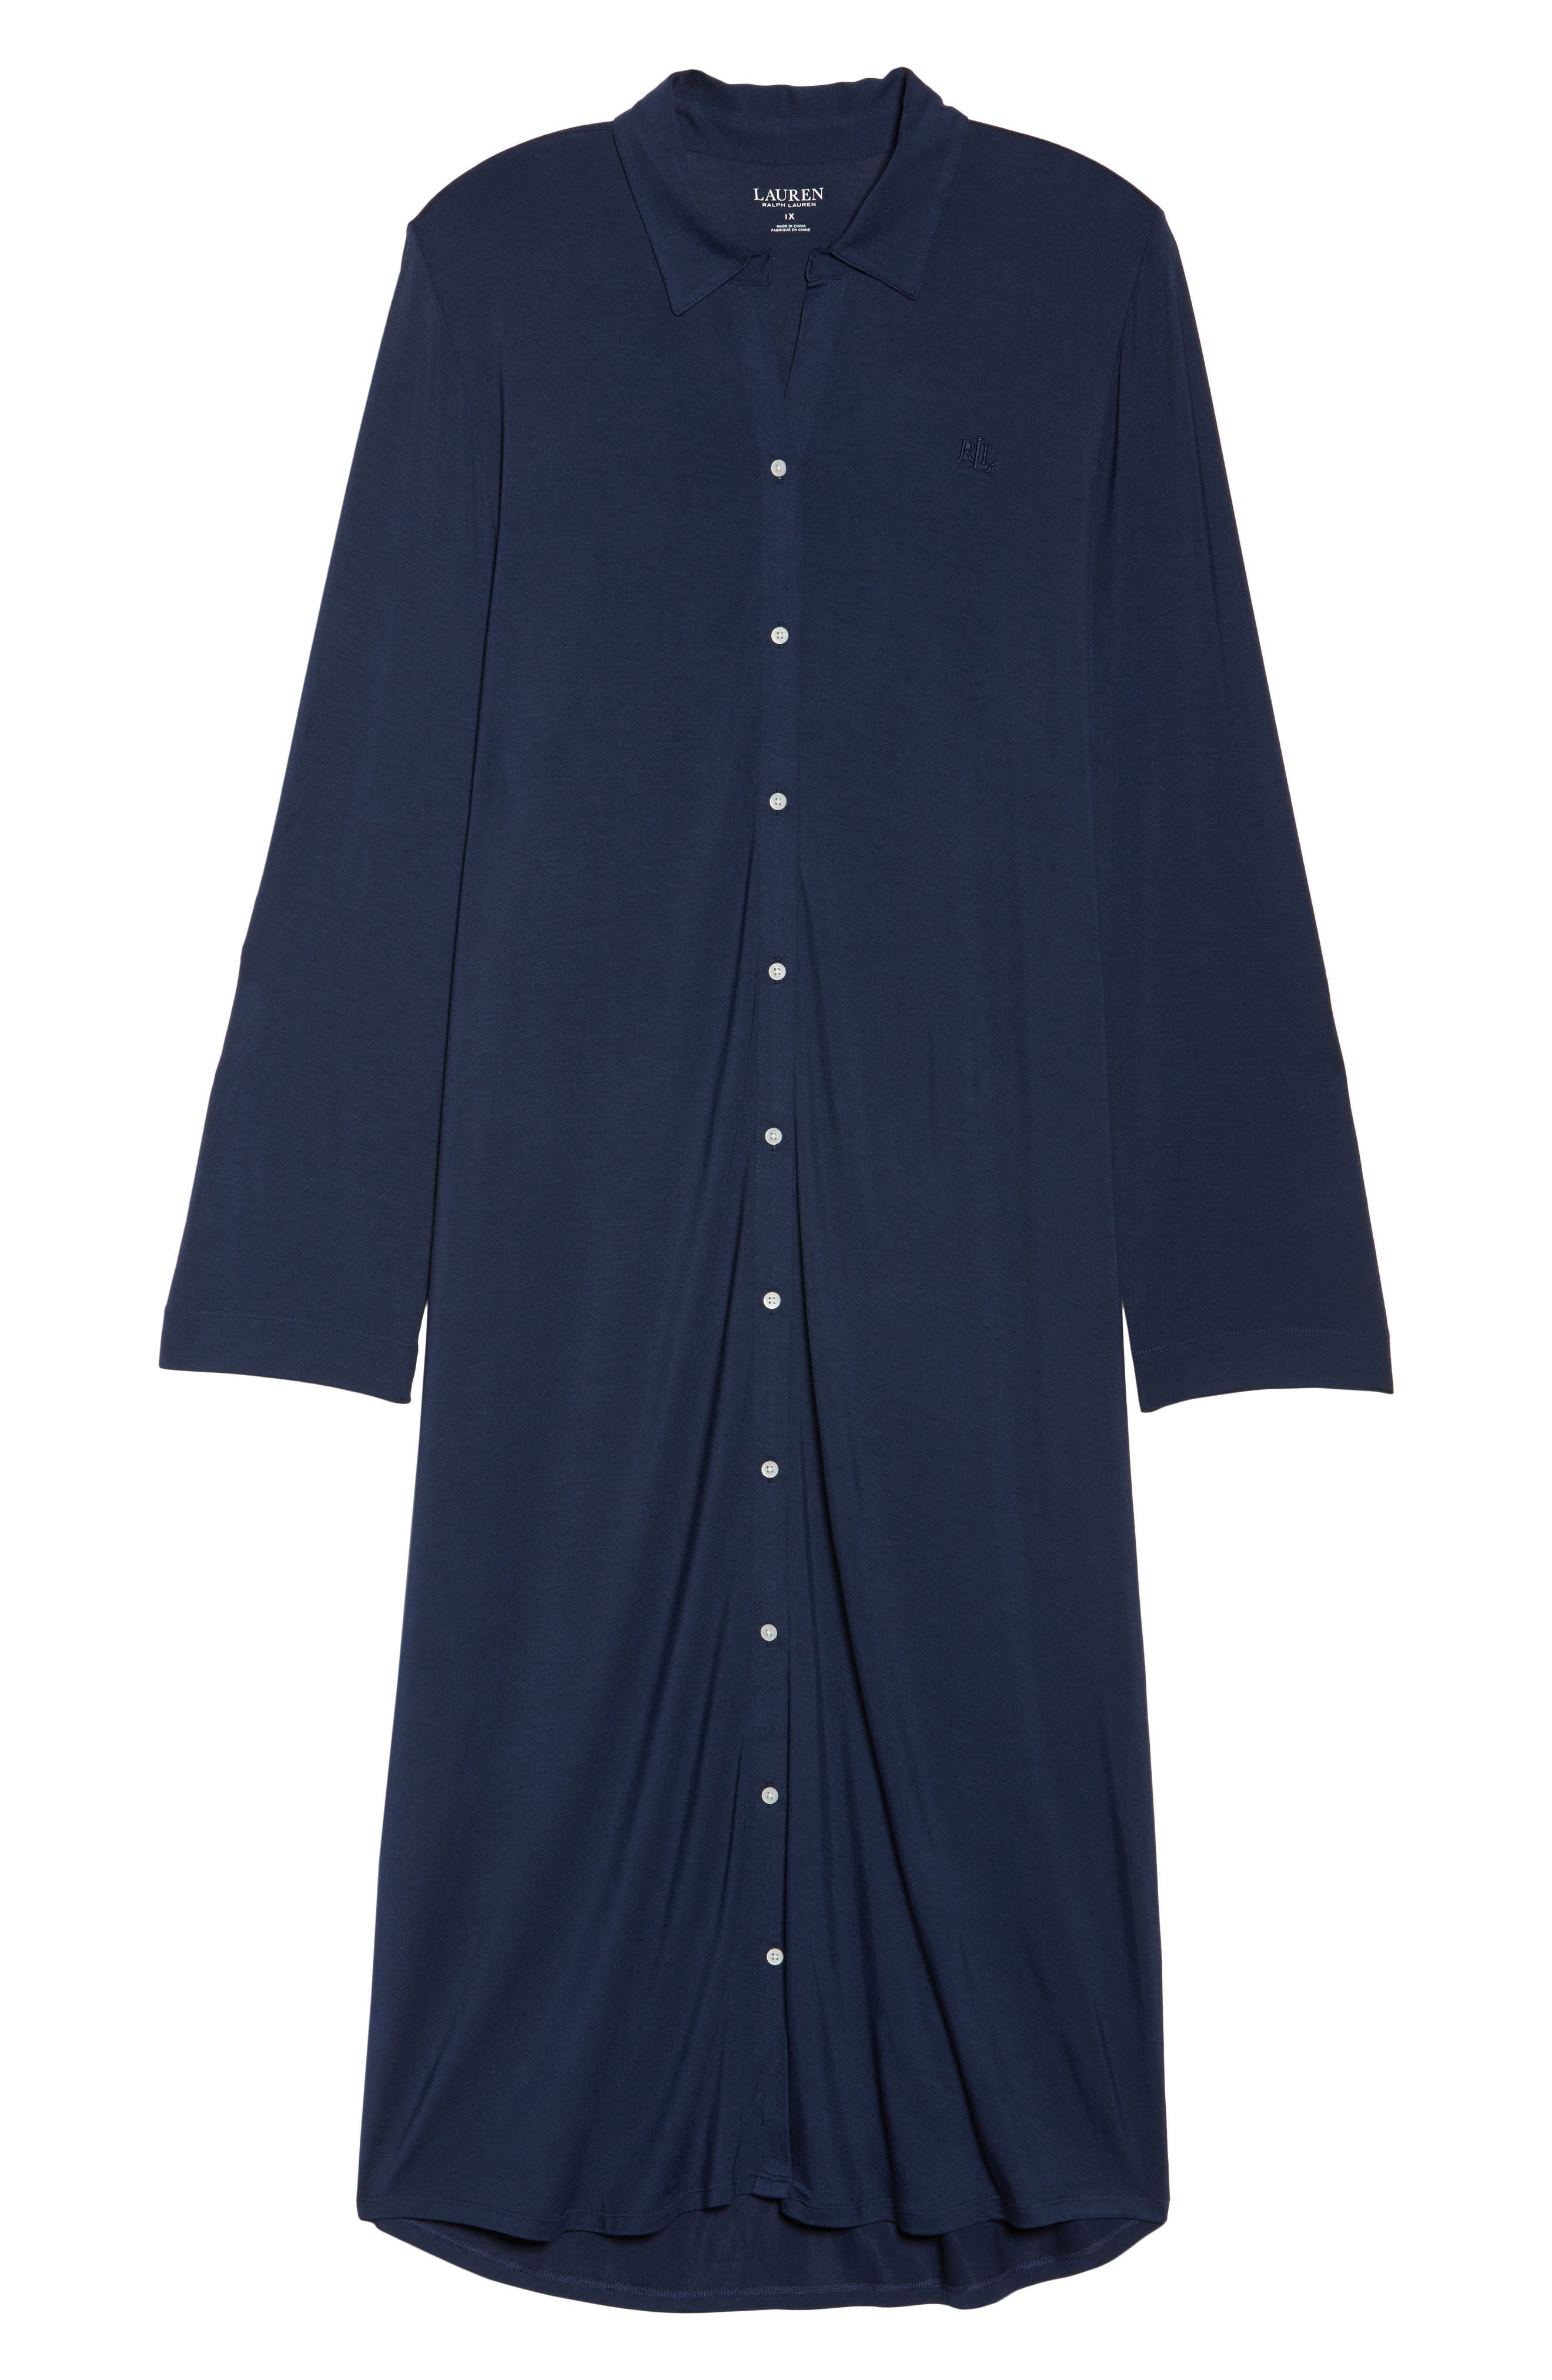 LAUREN RALPH LAUREN, Long Nightshirt, Alternate thumbnail 6, color, SPRING NAVY